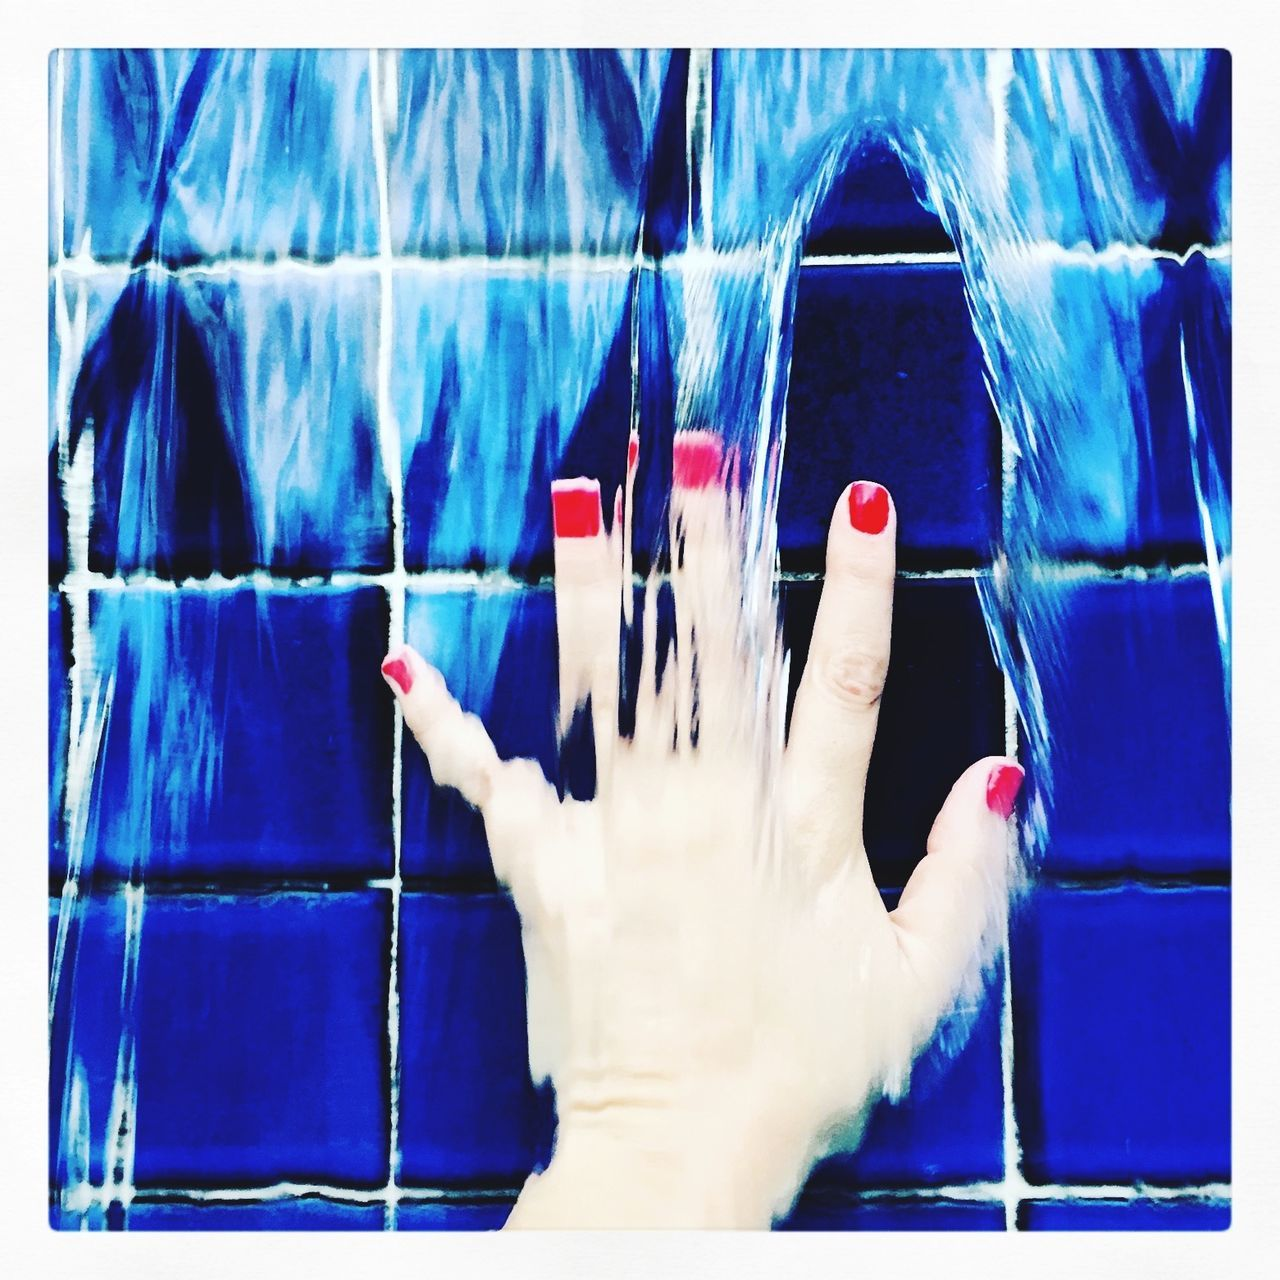 Water Falling On Cropped Hand Against Blue Wall